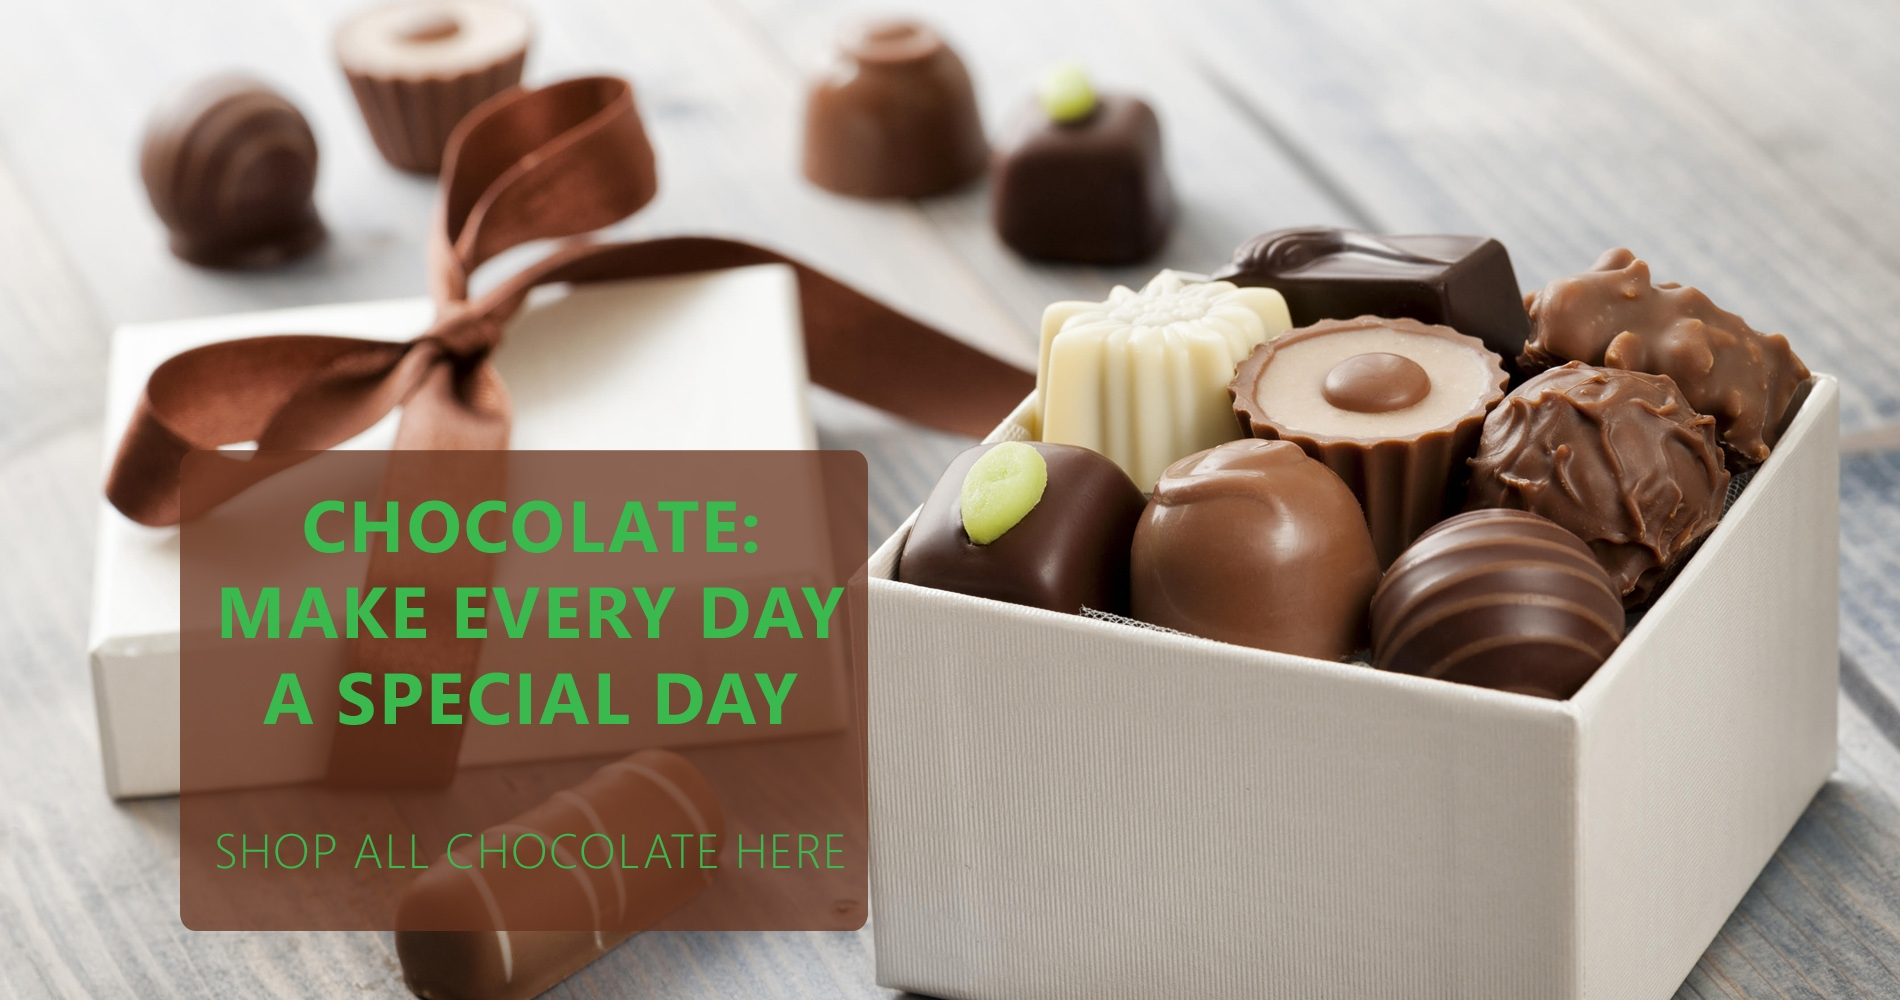 Chocolate makes every day a special day, shop chocolate here